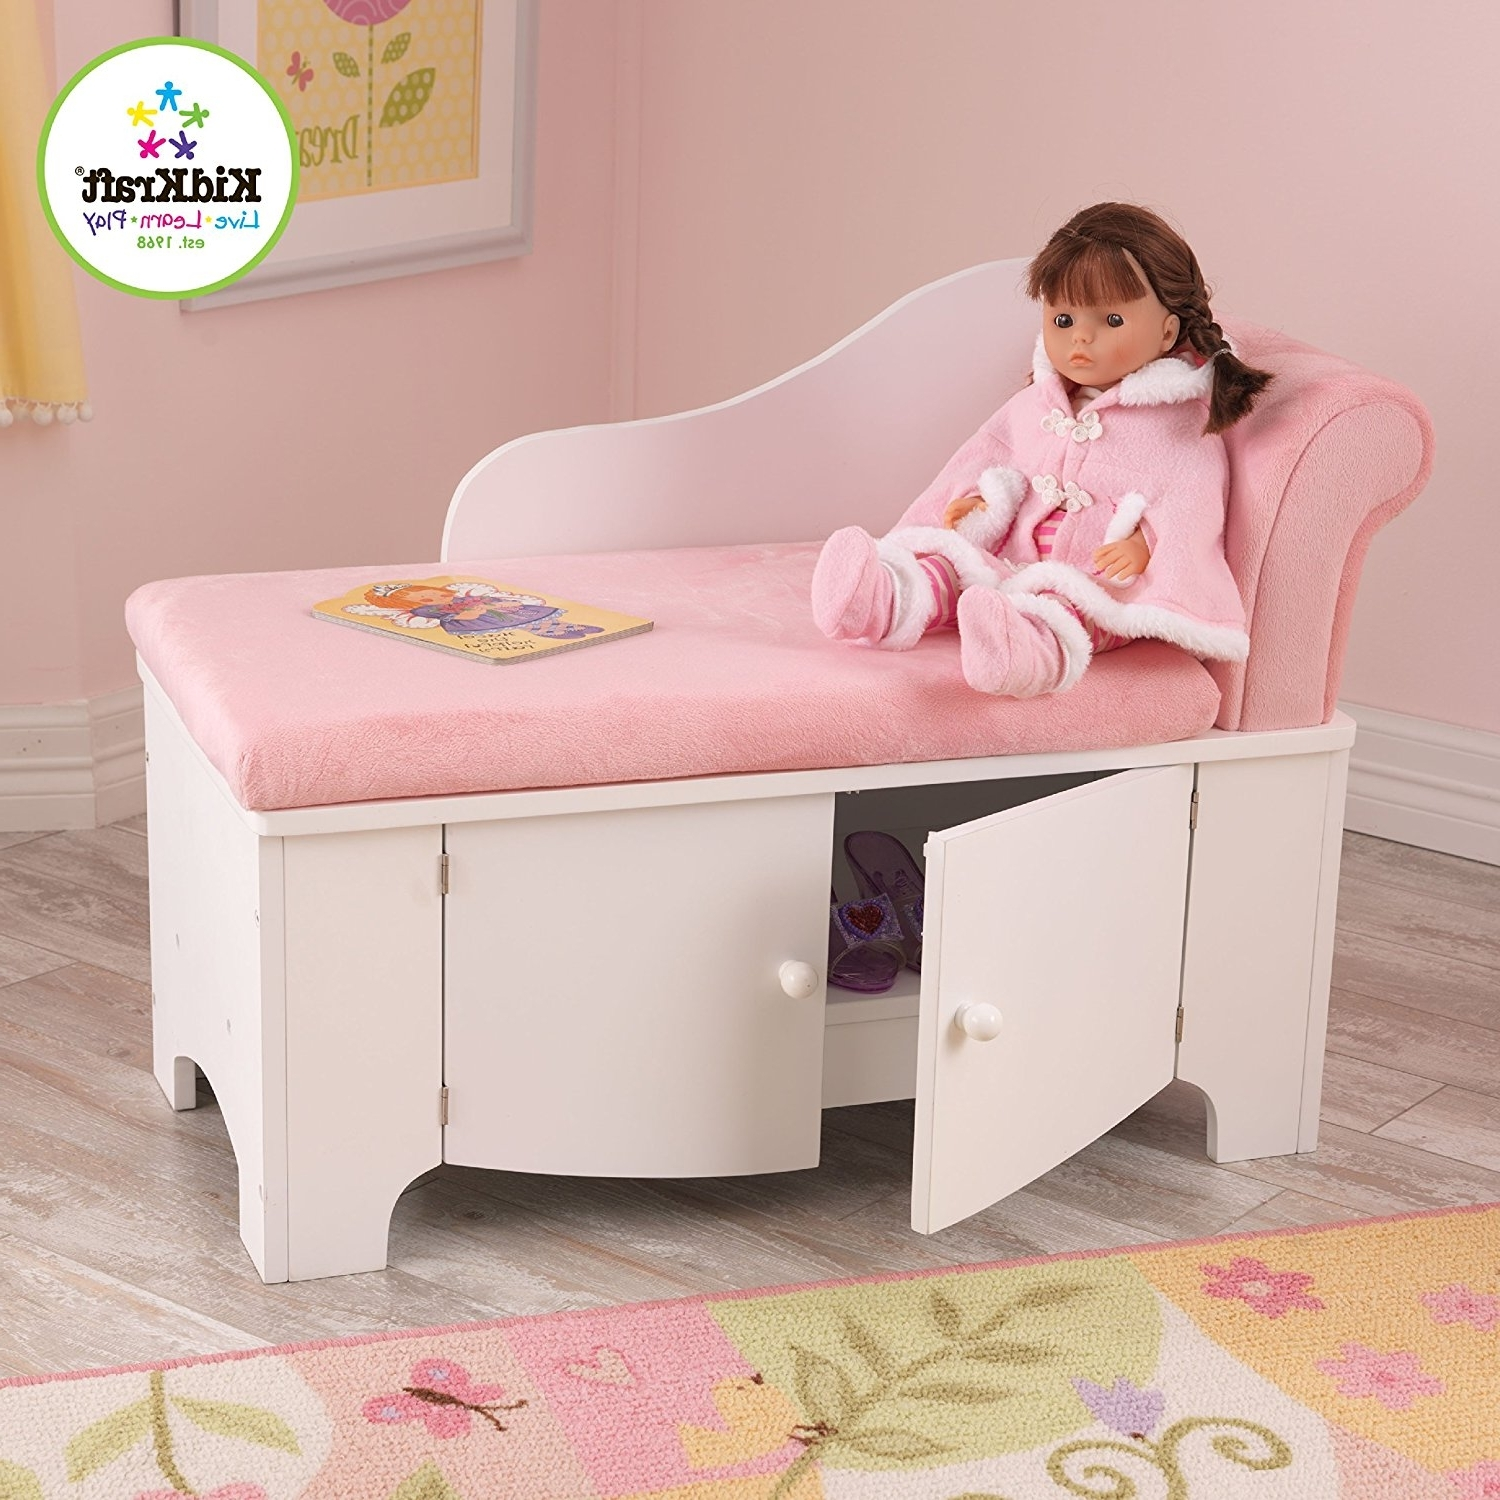 2018 Amazon: Kidkraft Girl's Princess Chaise Lounge: Toys & Games Regarding Kids Chaise Lounges (View 1 of 15)